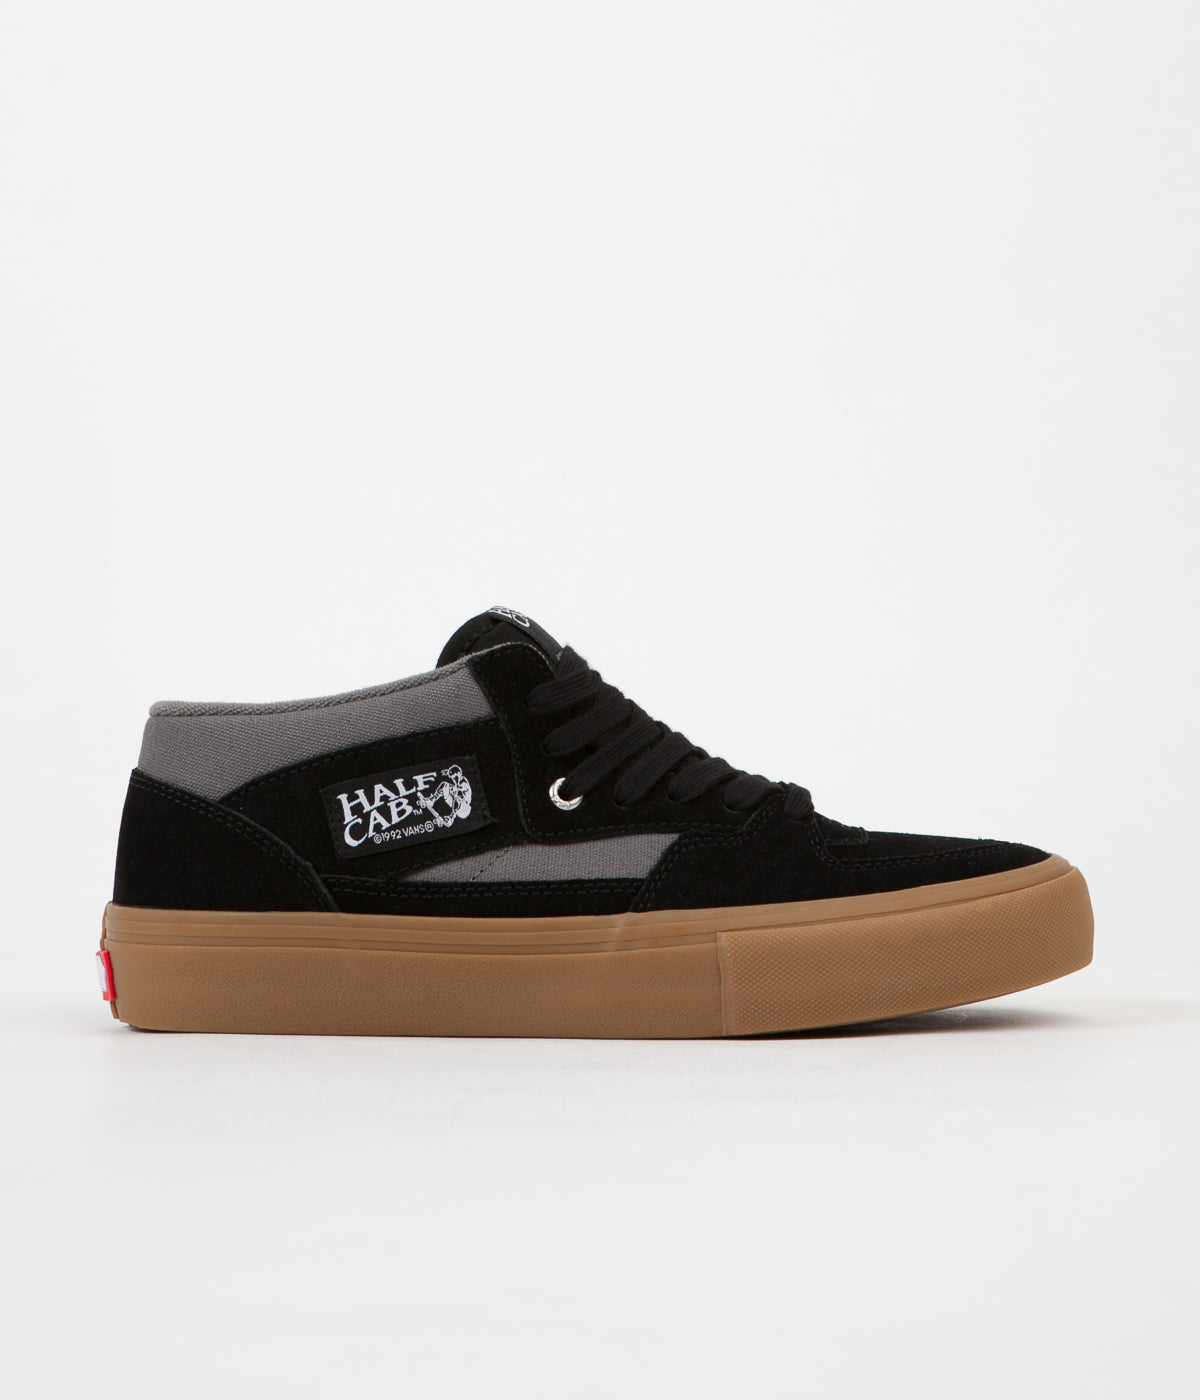 31042c67dfe Vans Half Cab Pro Shoes - Black   Pewter   Gum